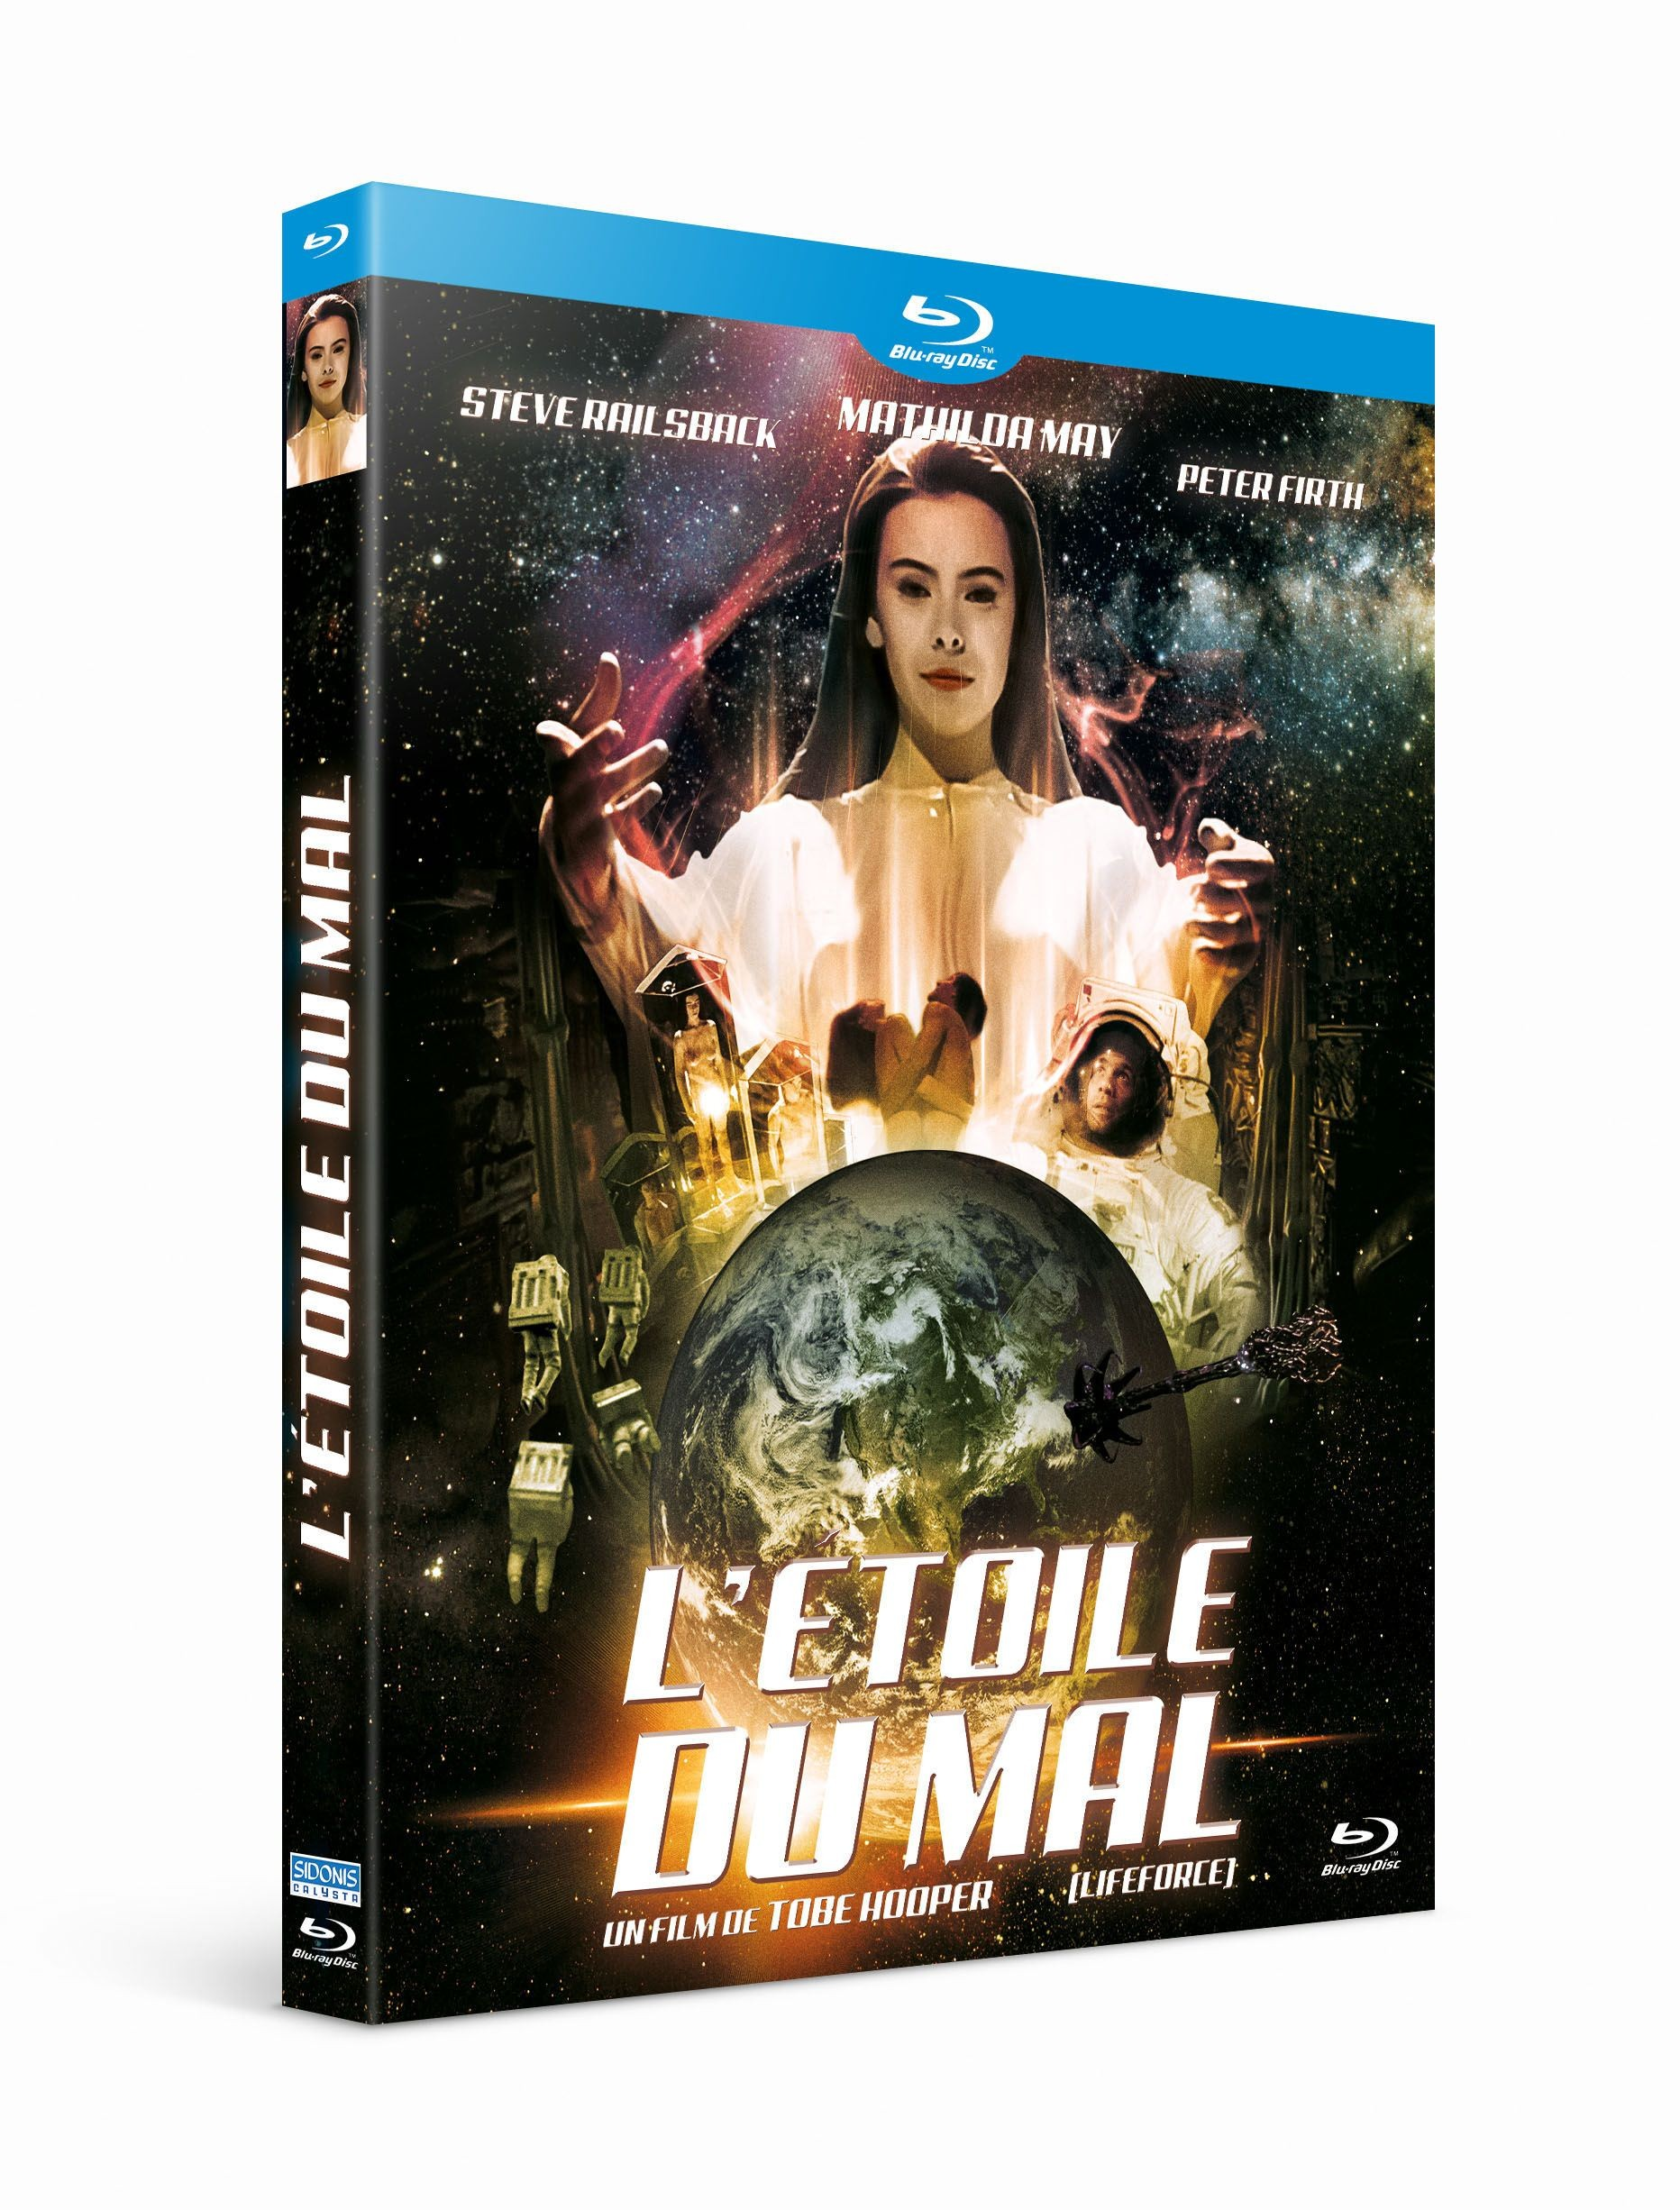 L'étoile du mal / Lifeforce